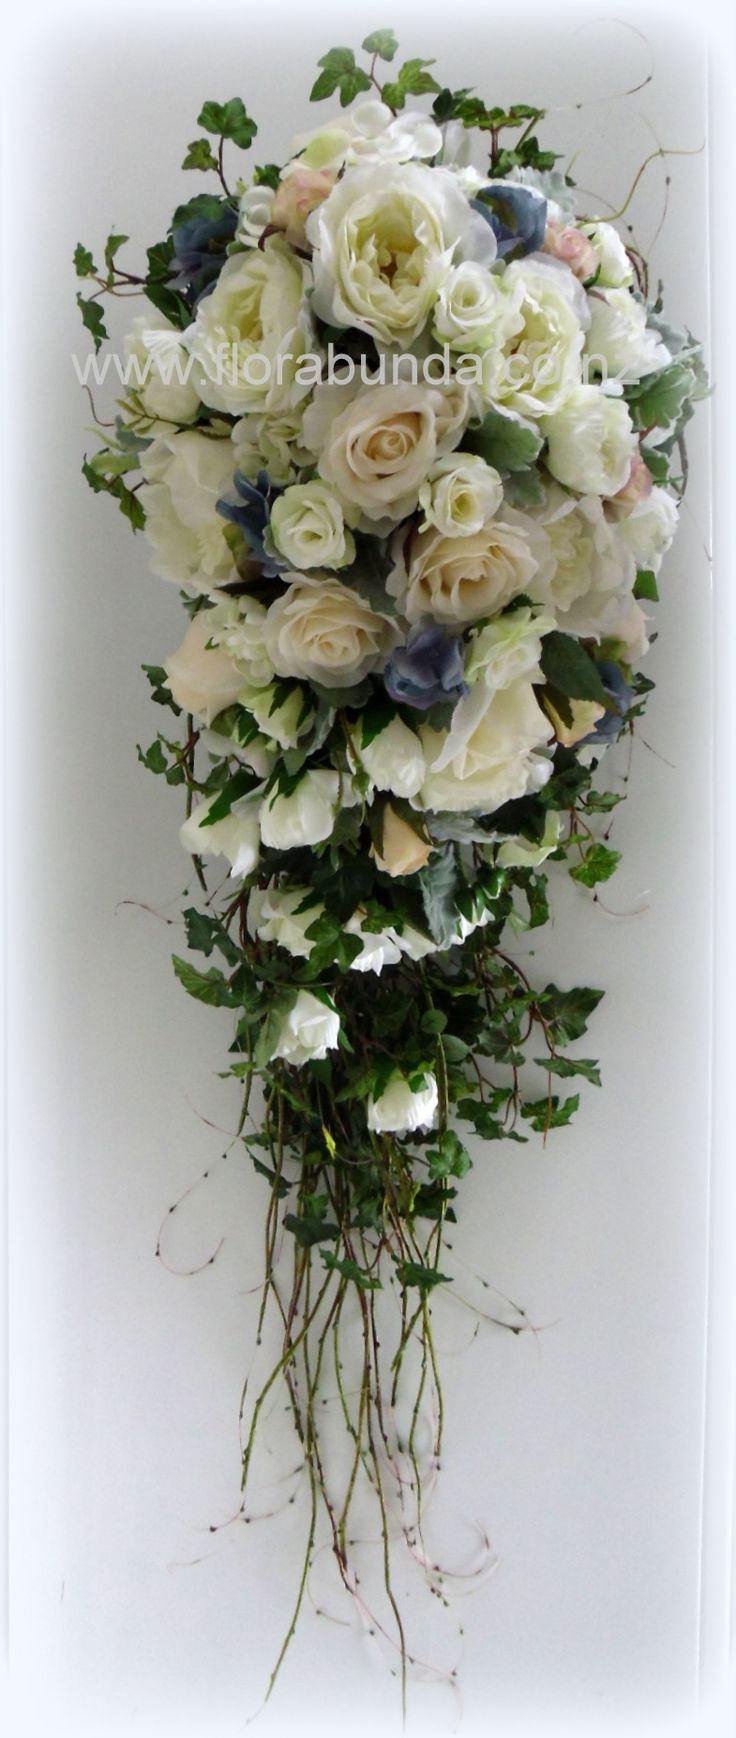 Large trailing wedding bouquet of artificial fake flowers. Hard to tell they are not real.